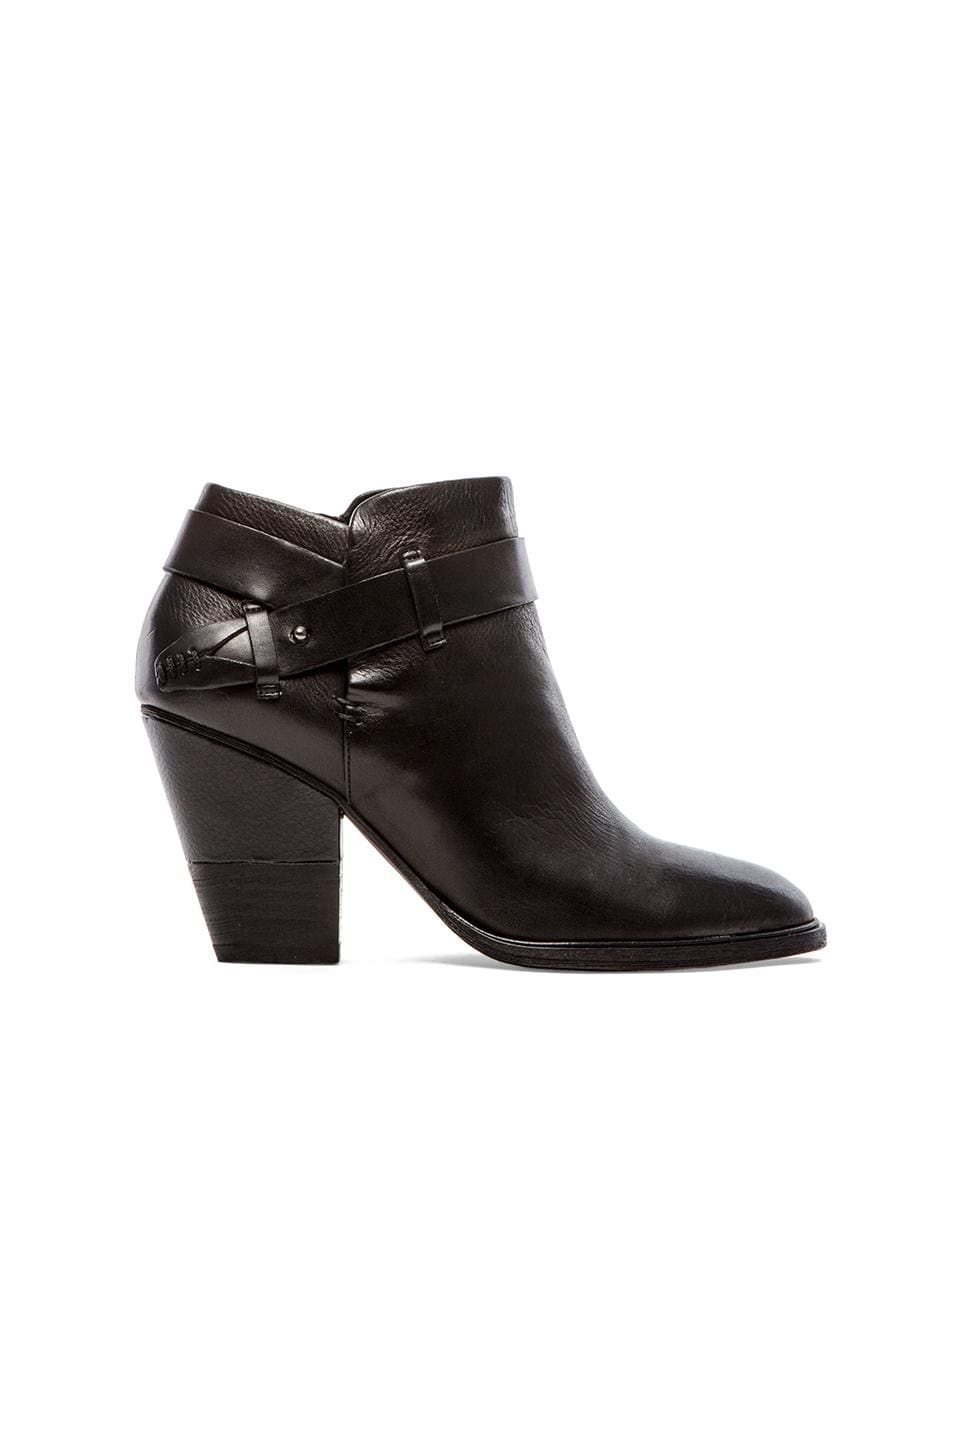 Dolce Vita Haelyn Bootie in Black